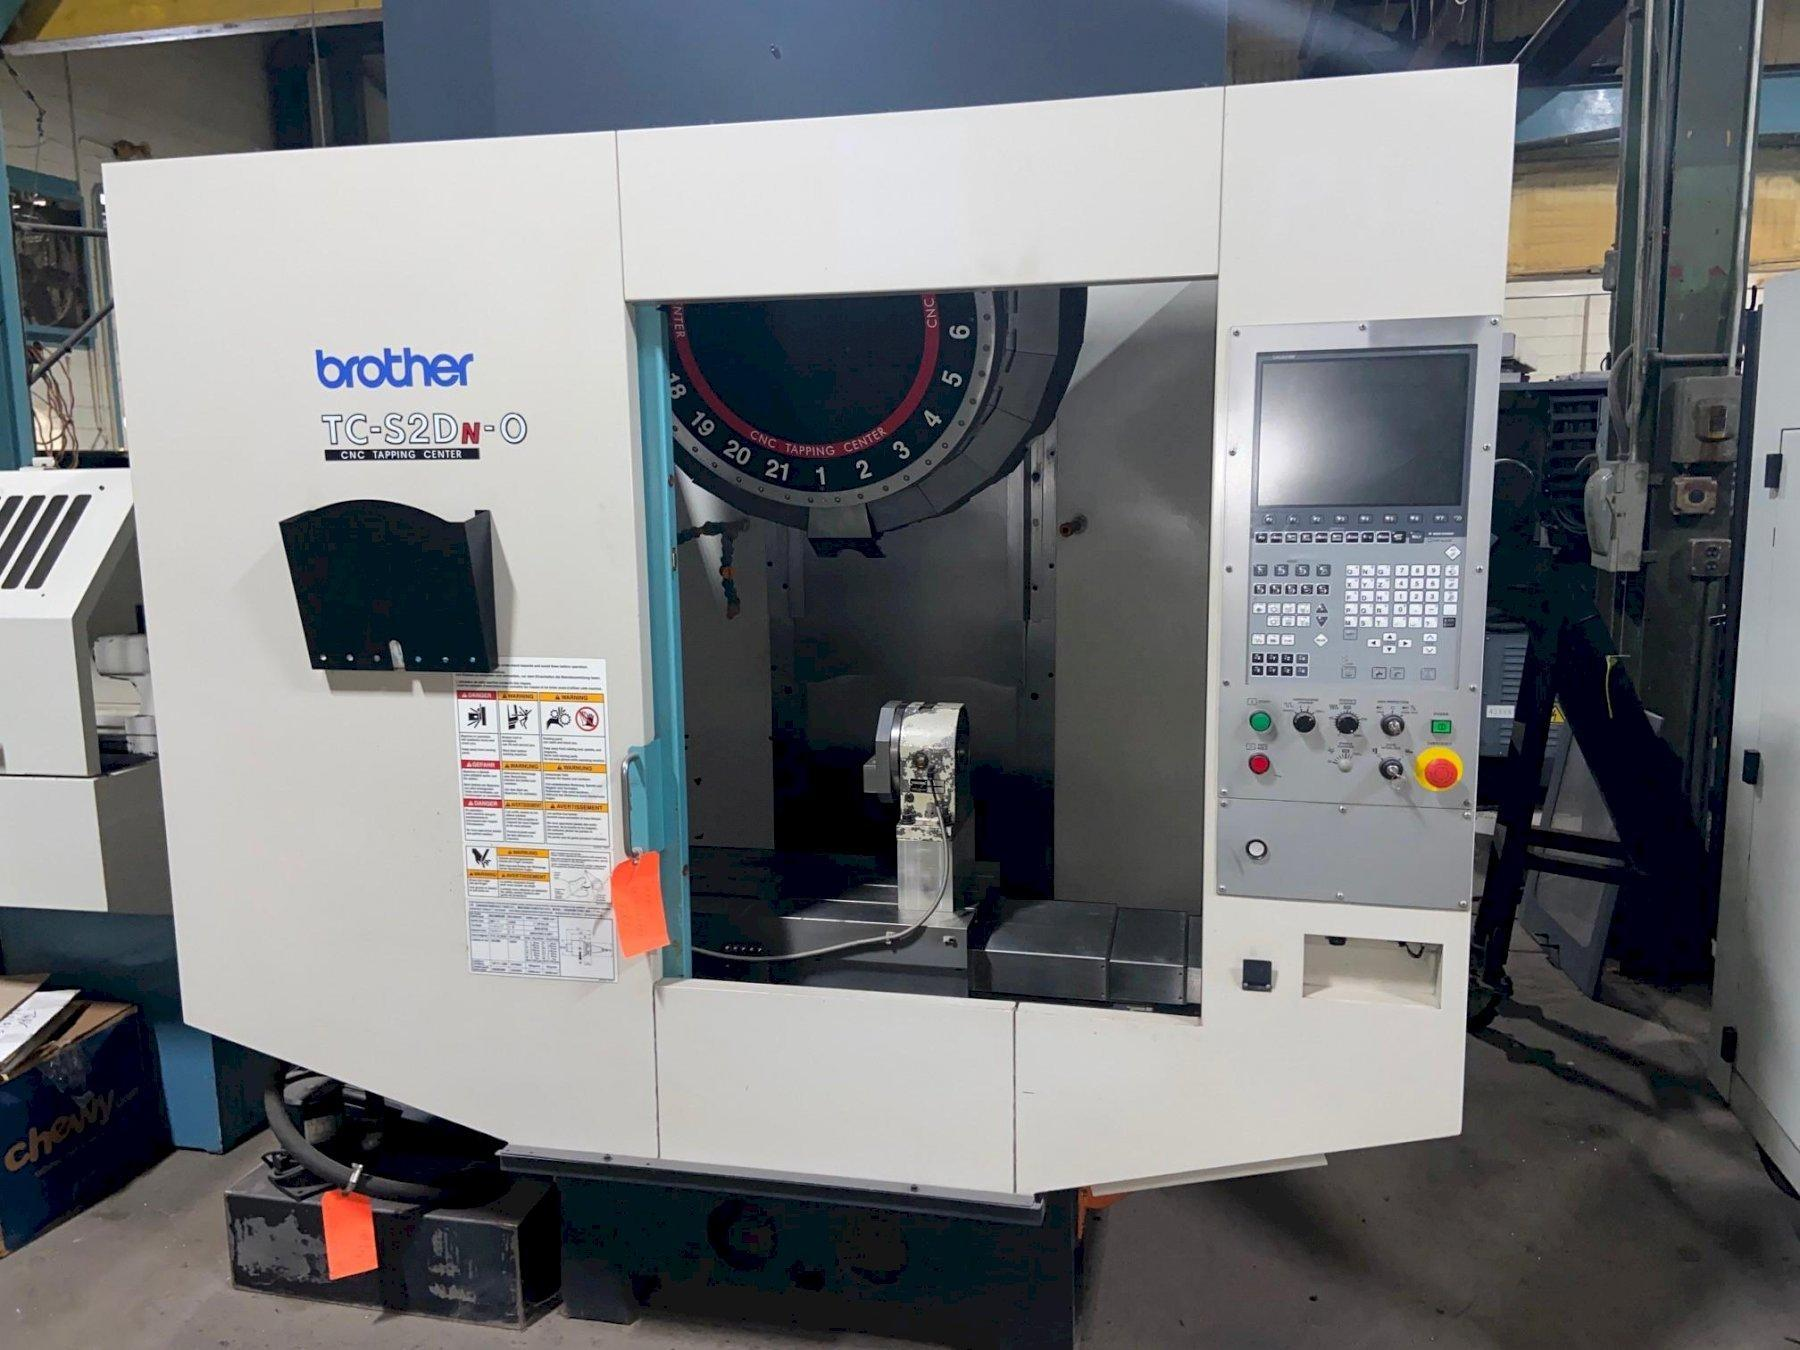 "Brother TC-2SDN-O CNC Drilling & Tapping Center, B00 Control, 27.6""/15.7""/11.6"" Travels, 10K RPM, 21 ATC, 30 Taper, 6"" Rotary Table, Clnt, 2013"